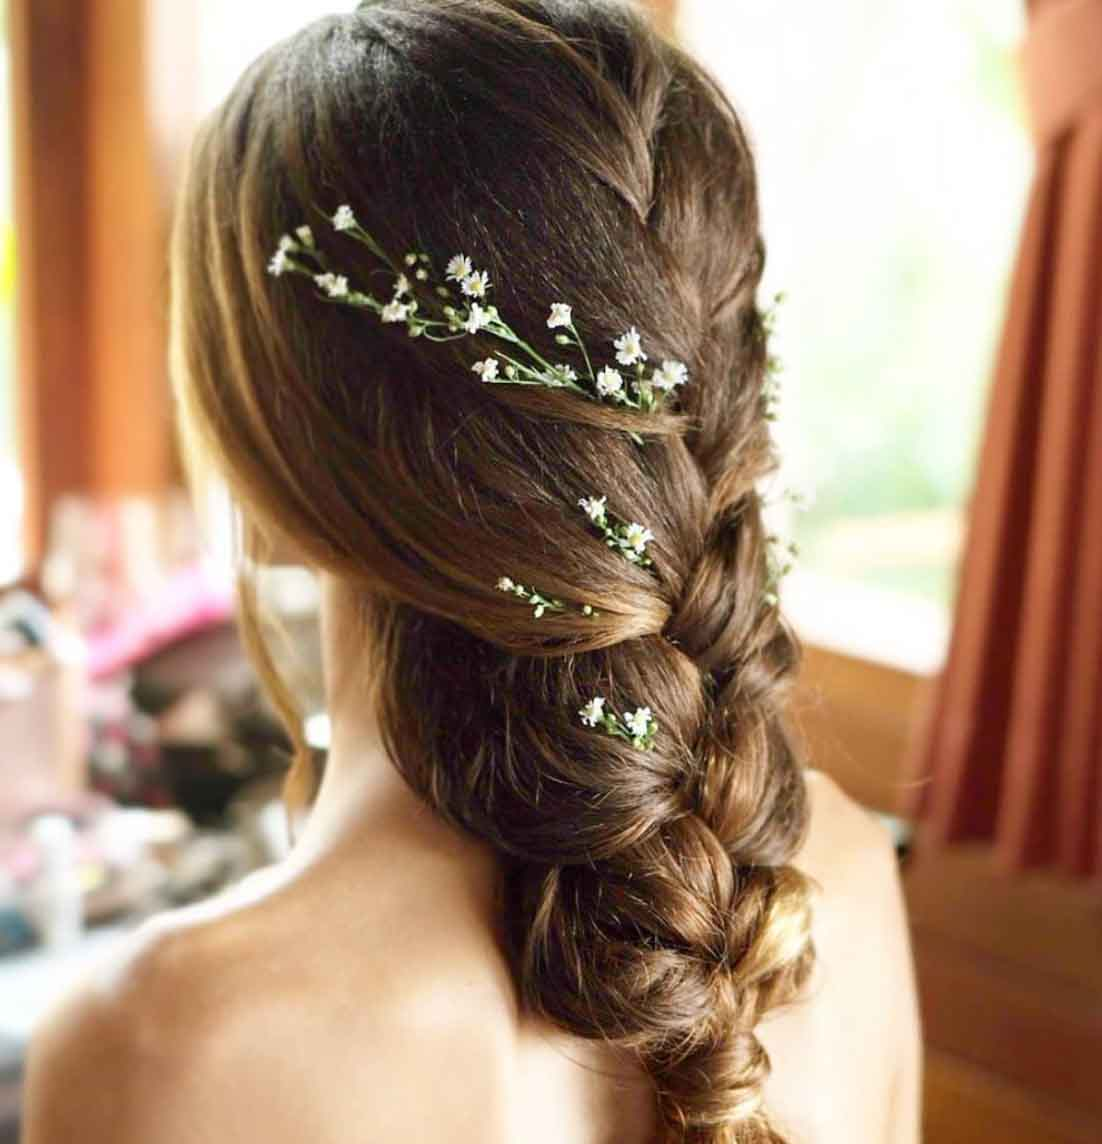 Natural Makeup & Hair for Bride On Wedding Day-10